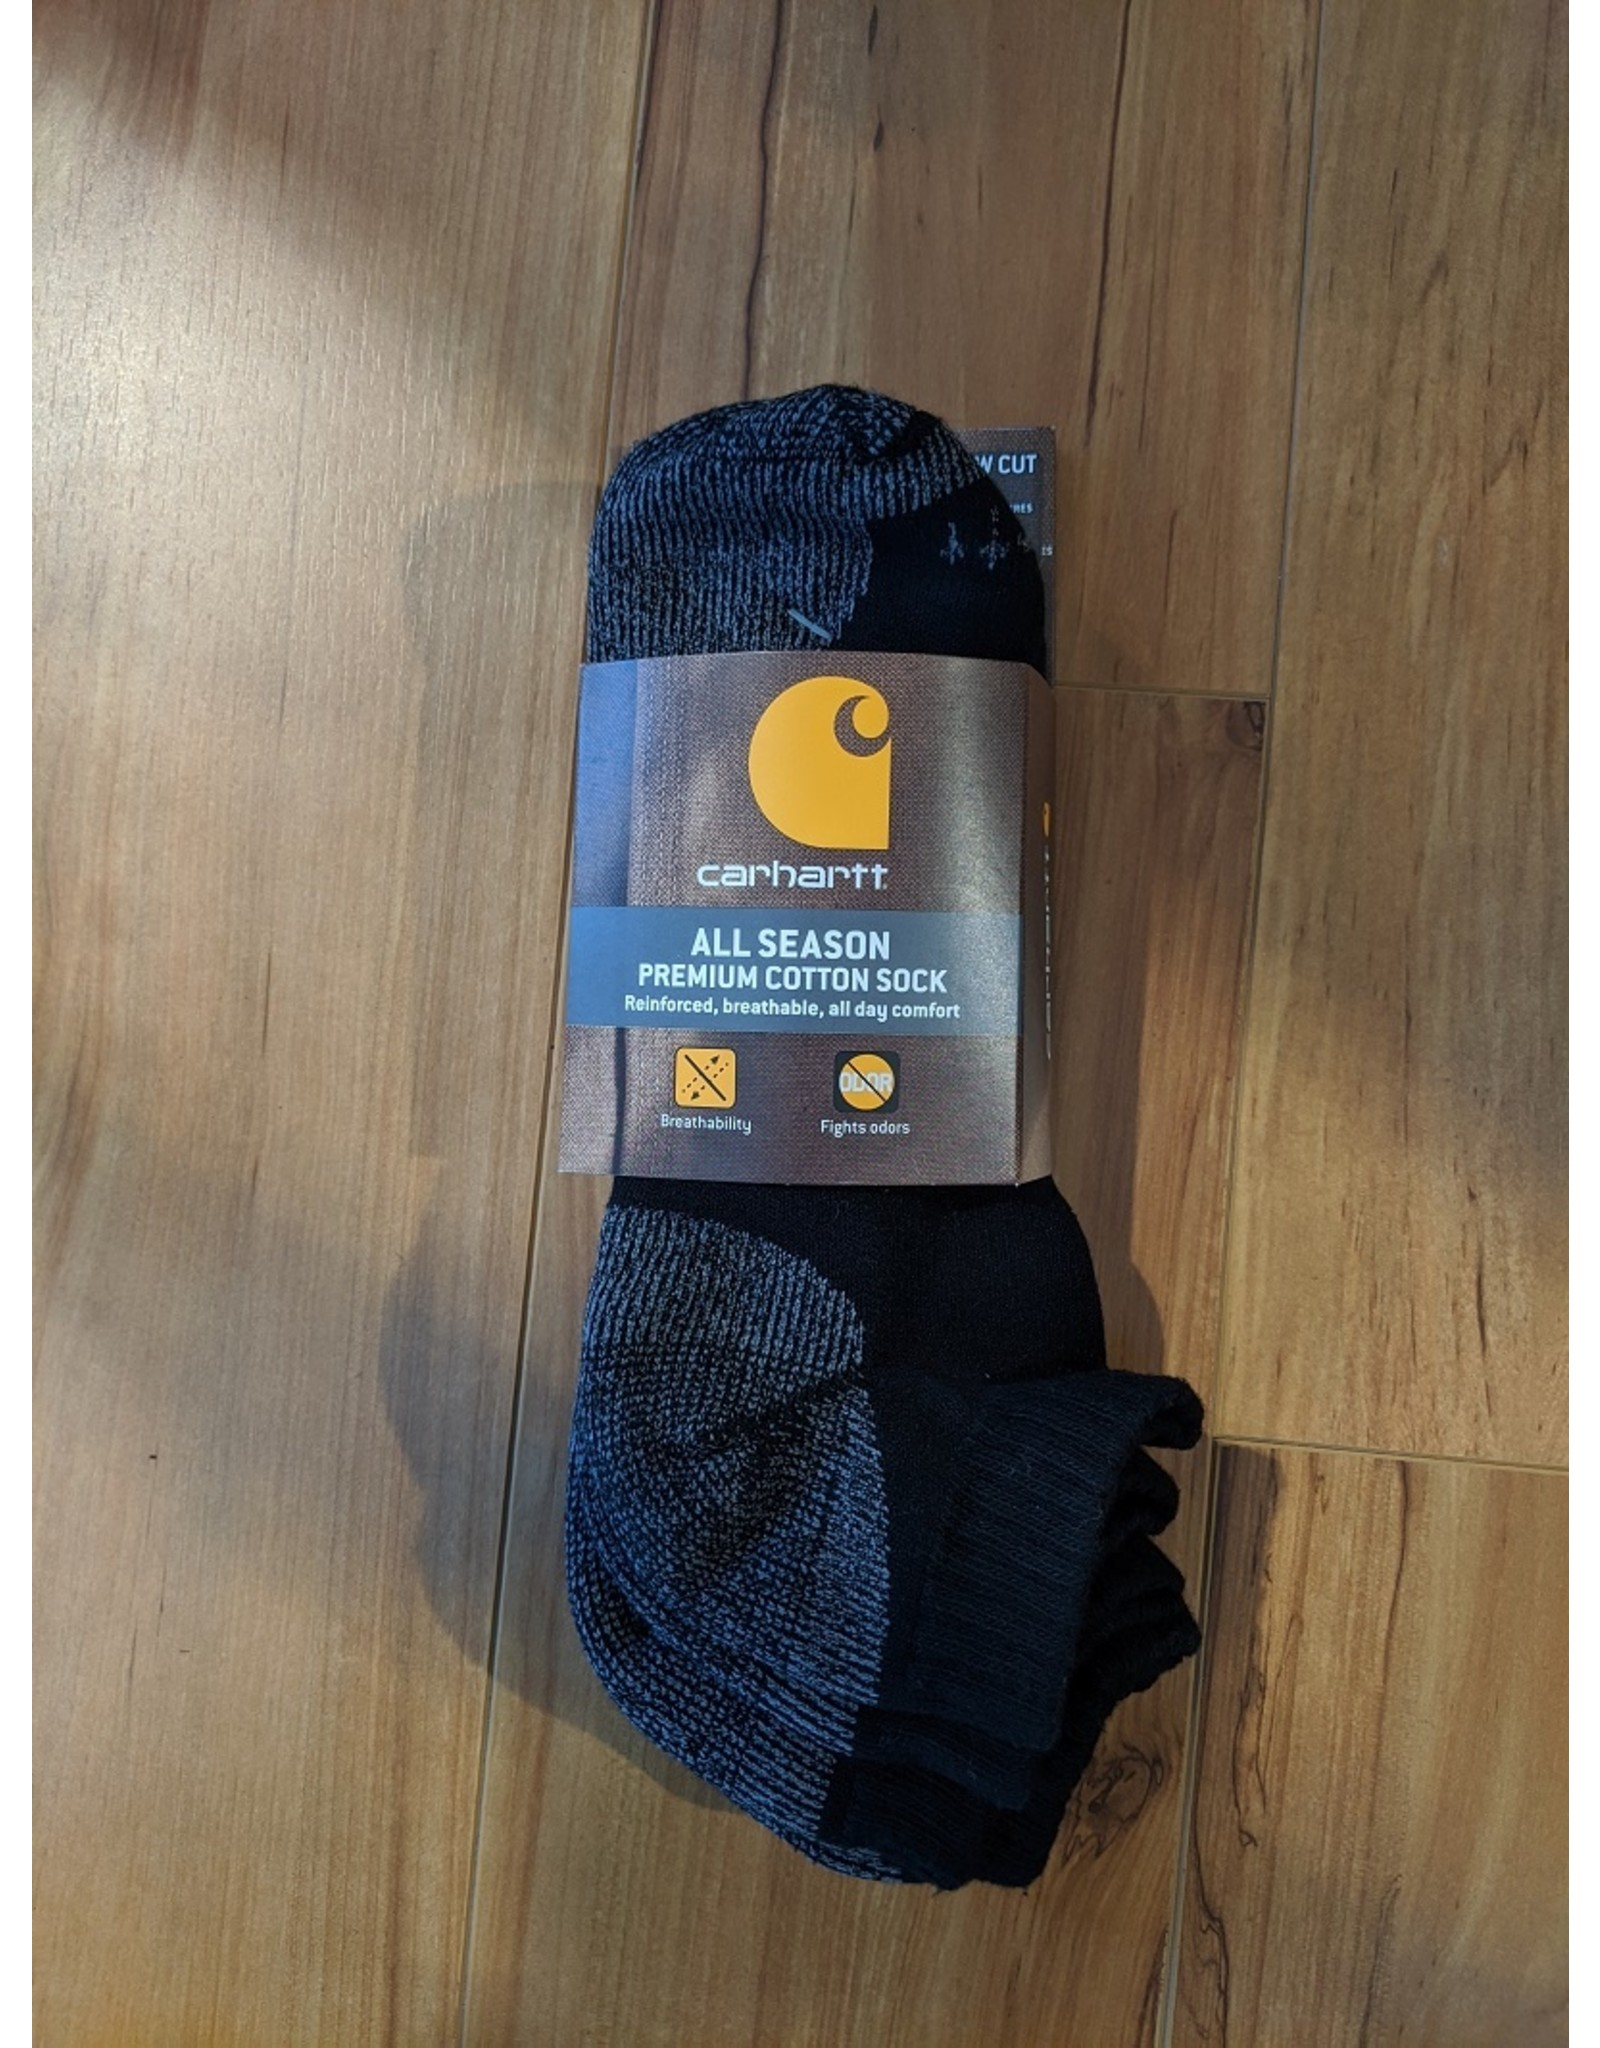 Carhartt Carhartt Low Cut Work Sock - 3 pack